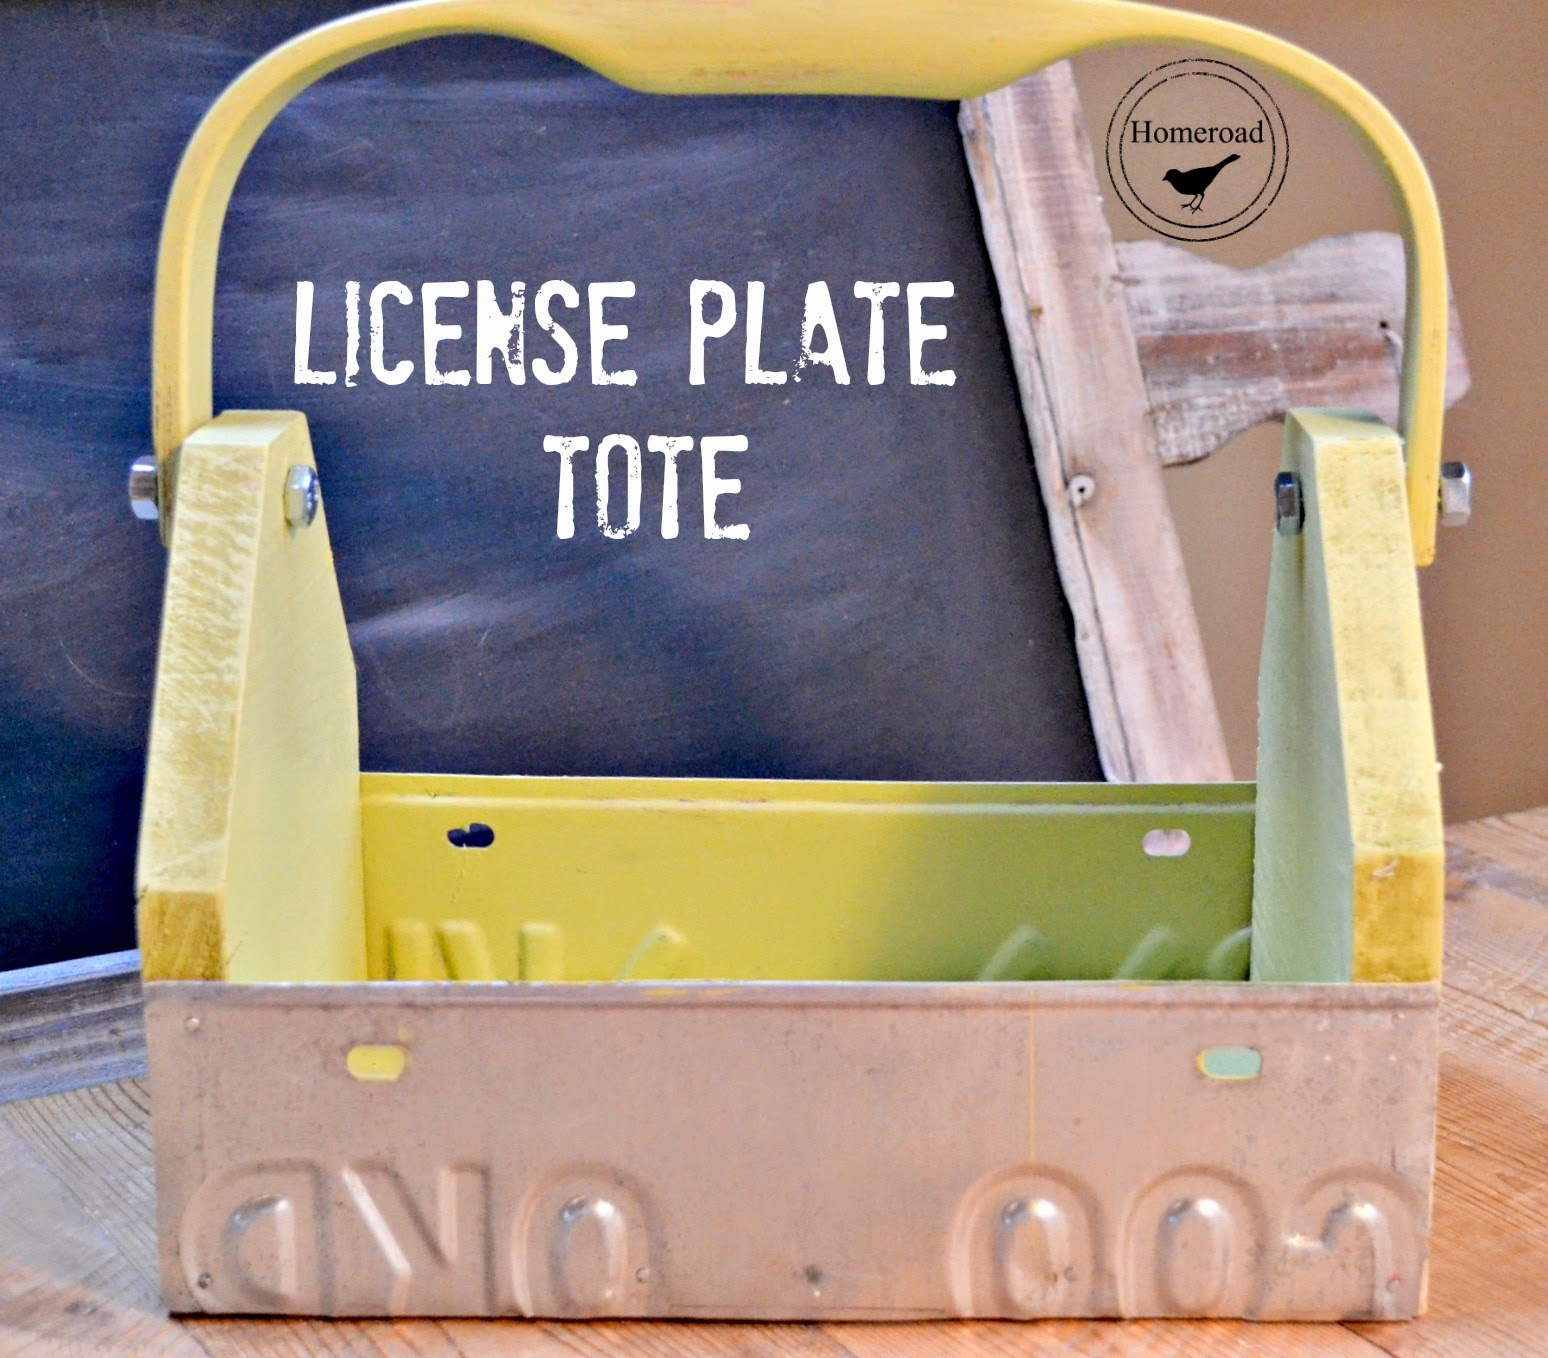 License Plate Garden Tool Box www.homeroad.net